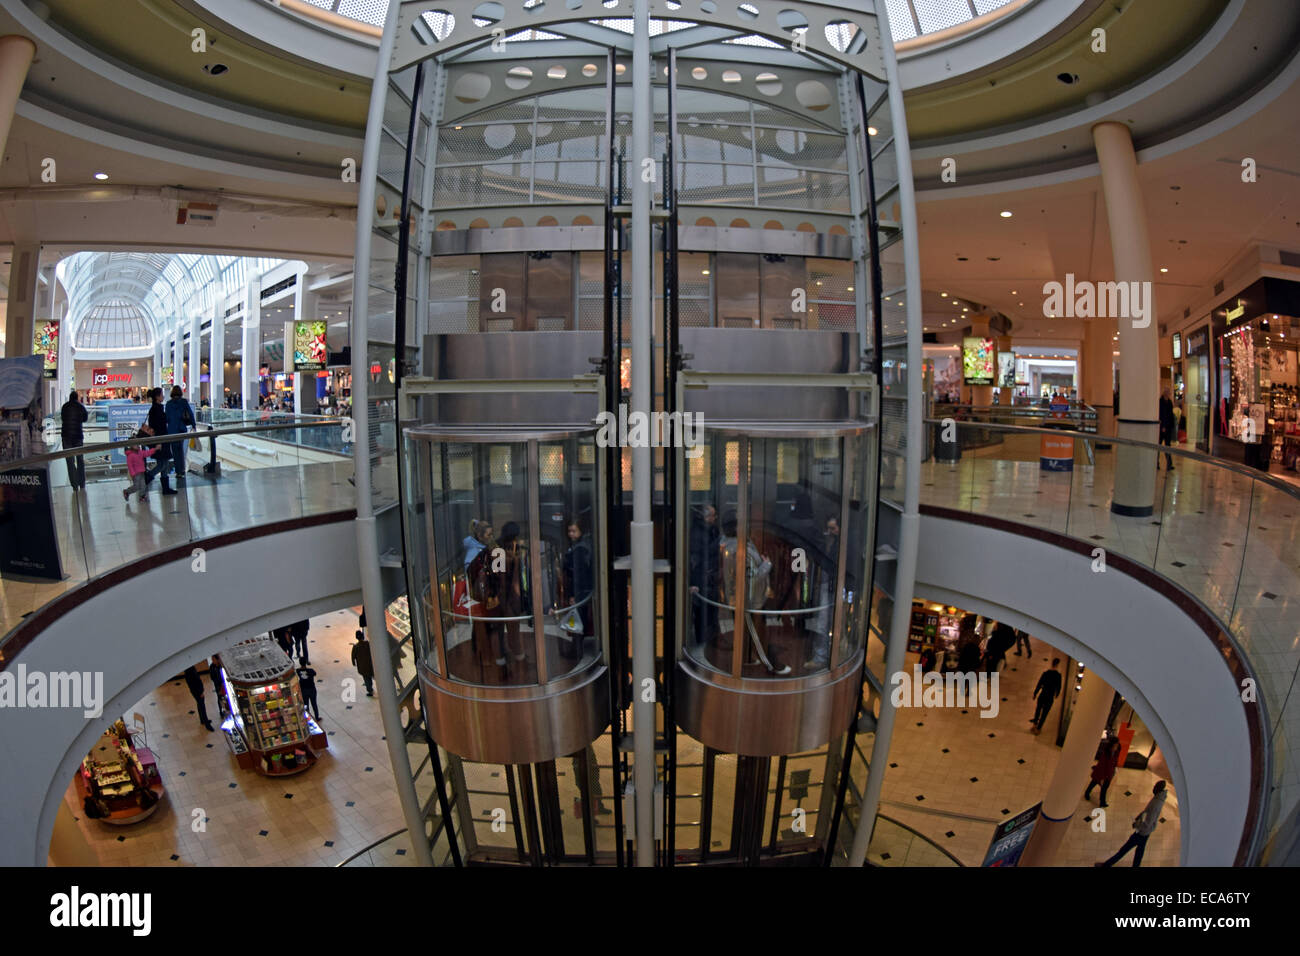 A general view of the Roosevelt Field indoor mall in Garden City Long Island New York. Photo with fisheye lens. - Stock Image